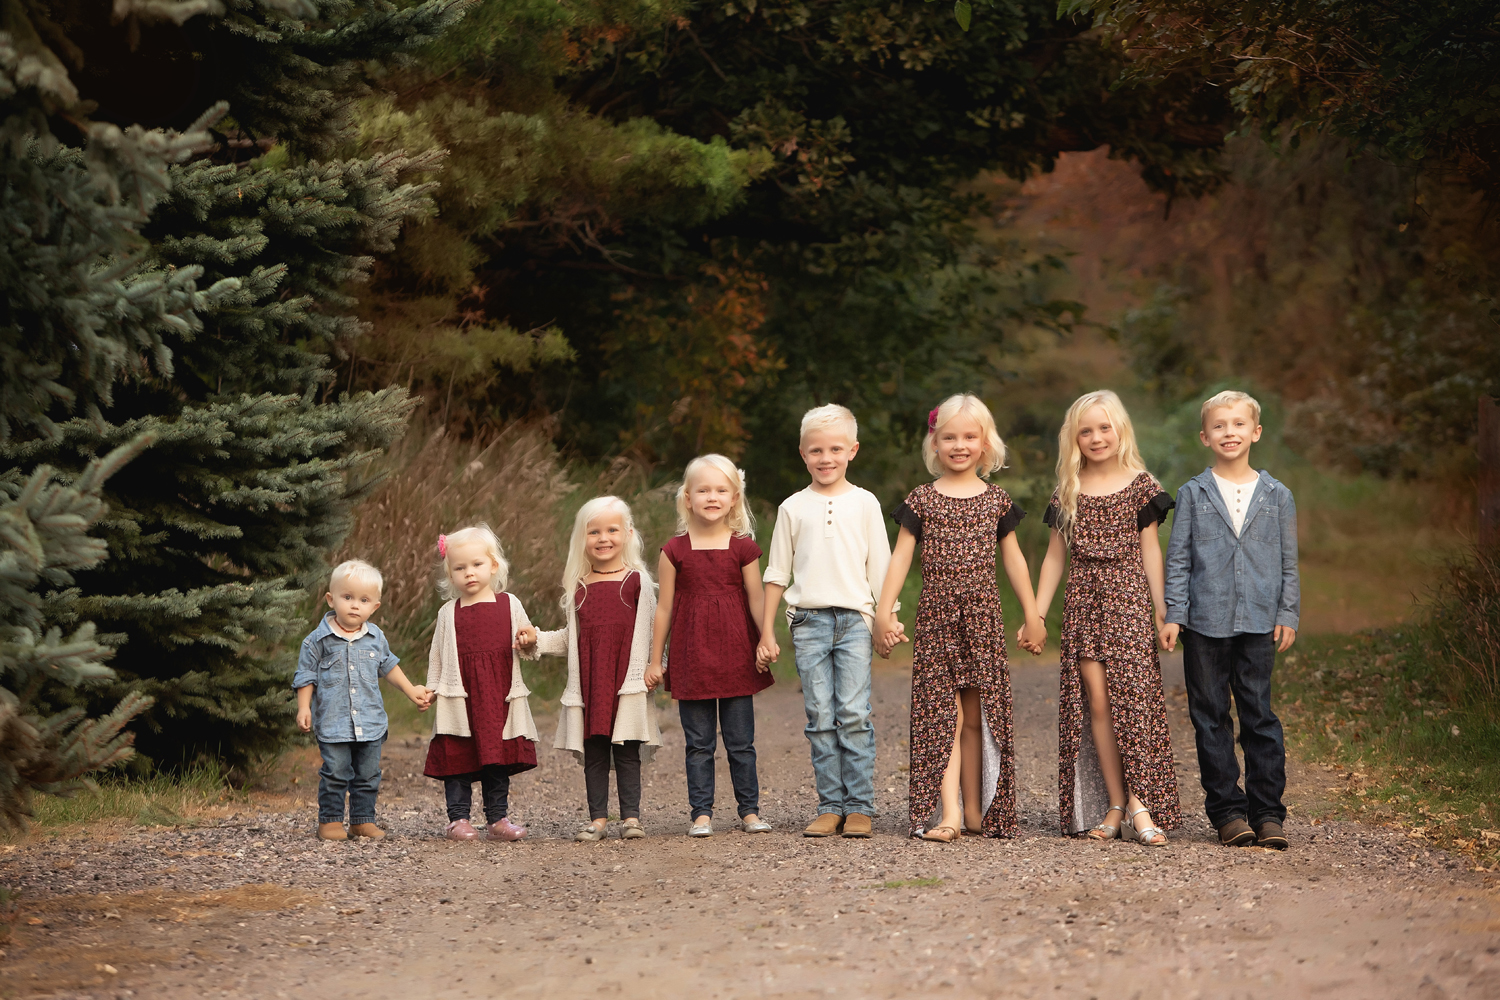 Shalista Photography created this beautiful cousin portrait at Great Bear Park east of Sioux Falls!